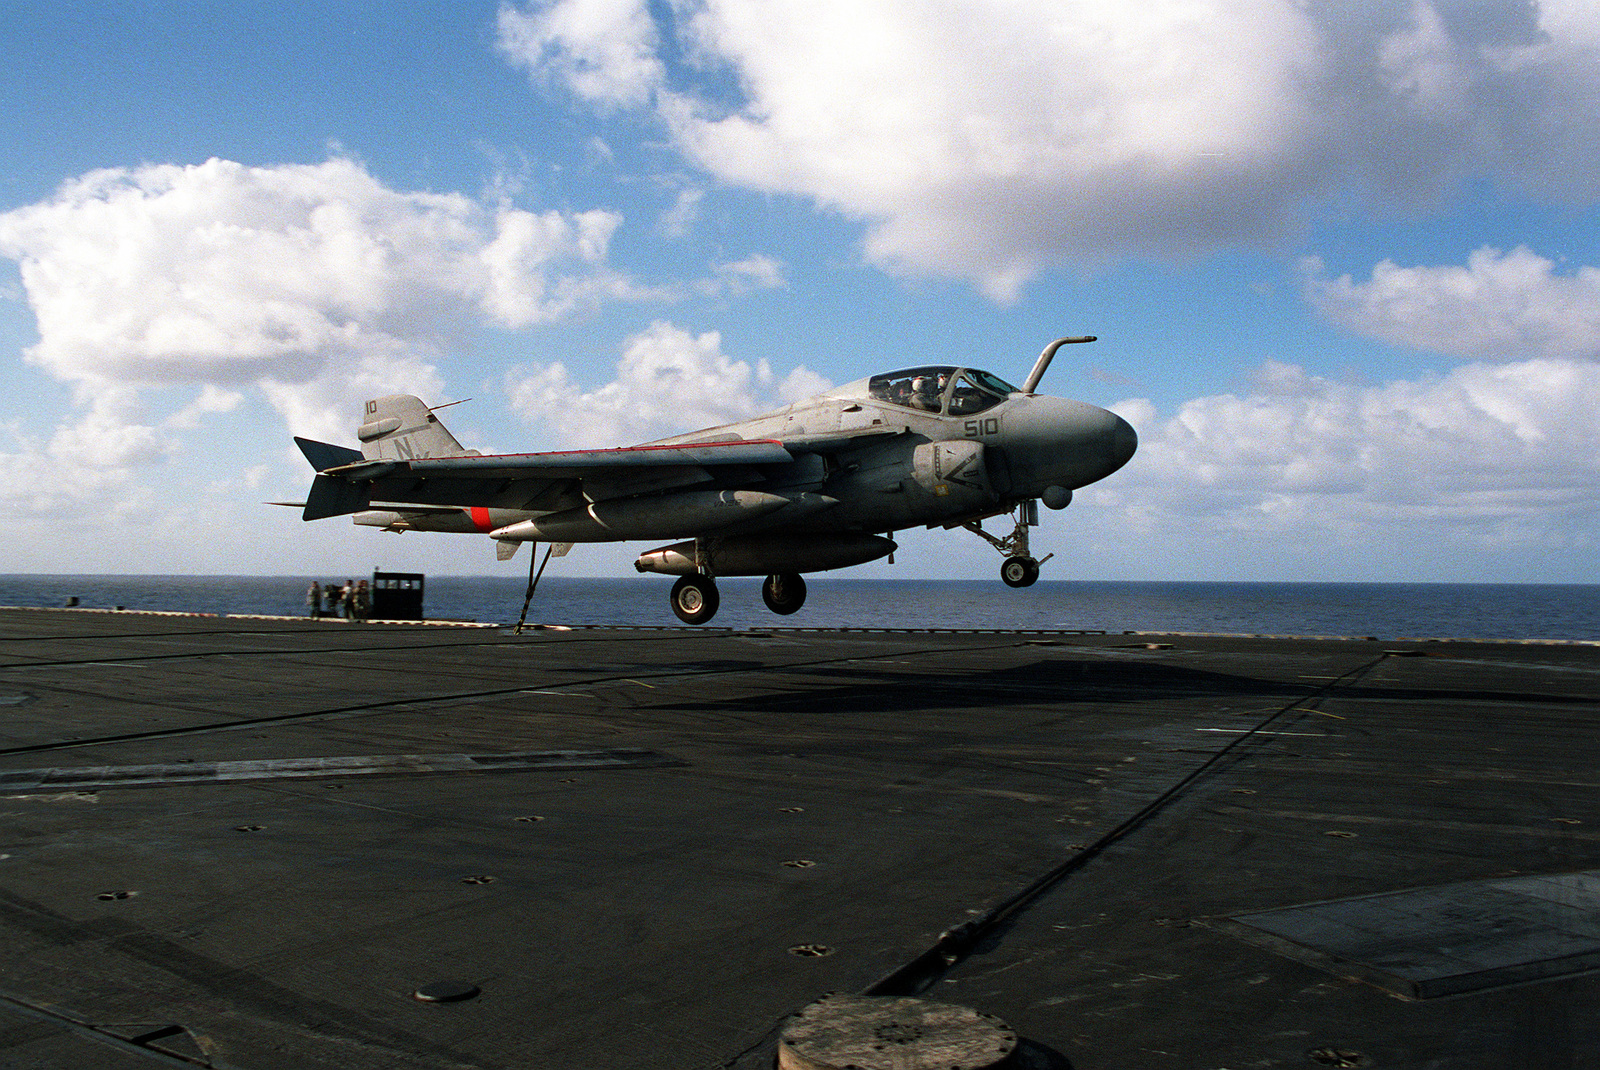 An A-6E Intruder aircraft prepares to catch the arresting wire on the flight deck of the aircraft carrier USS INDEPENDENCE (CV-62) as the vessel returns to the United States after serving in the Persian Gulf region during Operation Desert Shield